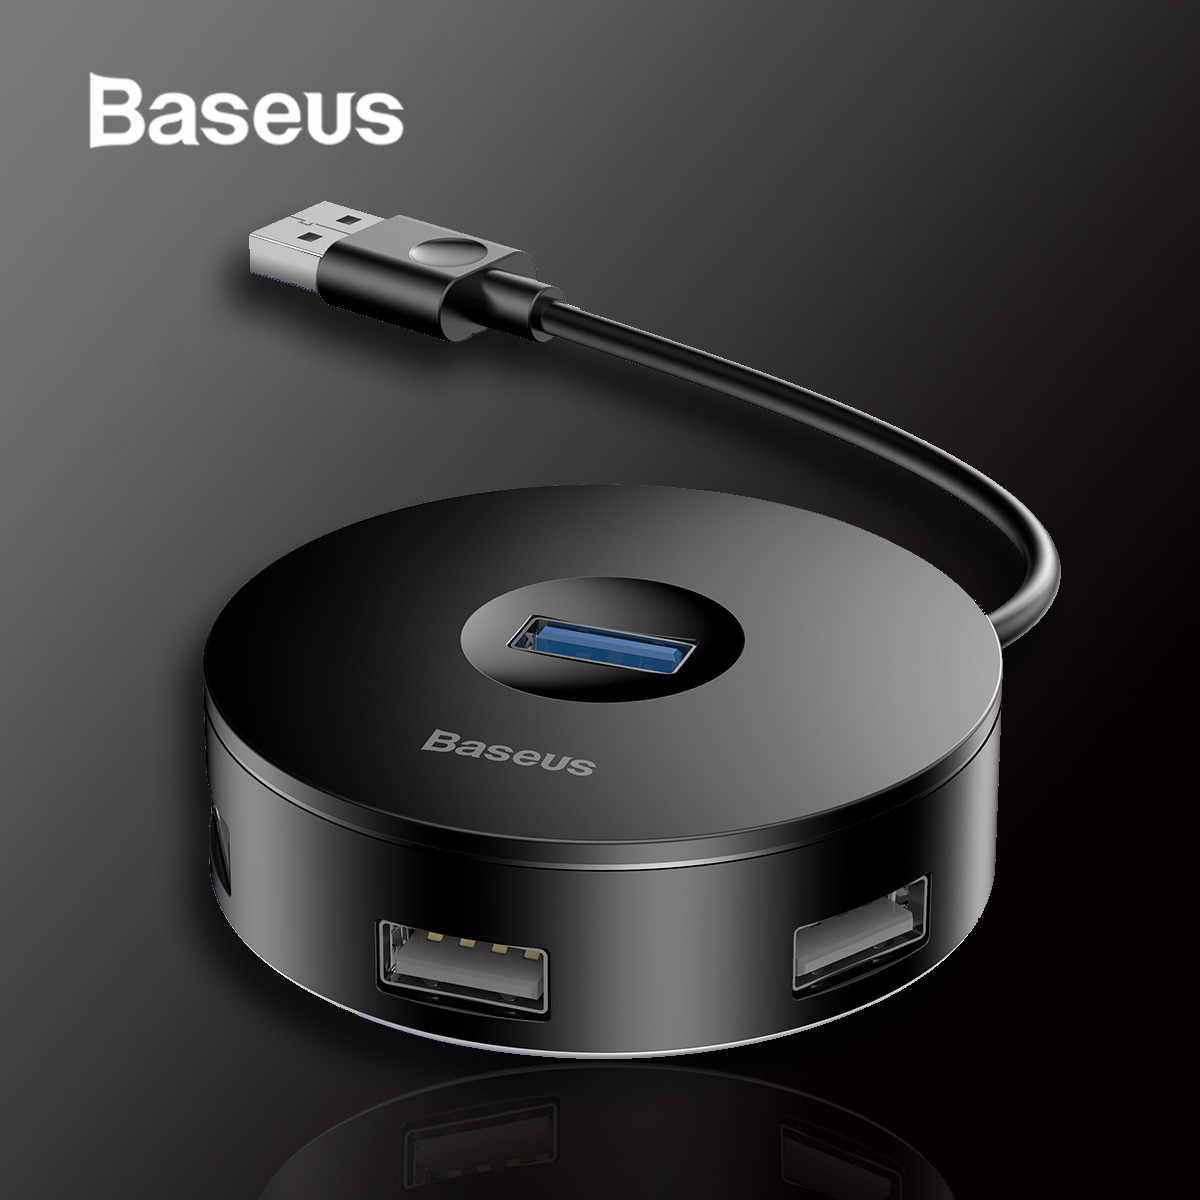 Baseus USB 3.0 4-Port USB Hub 5 gb/s Adapter HUB USB typu C dla Huawei komputer PC Macbook typu C Hub USB 3.0